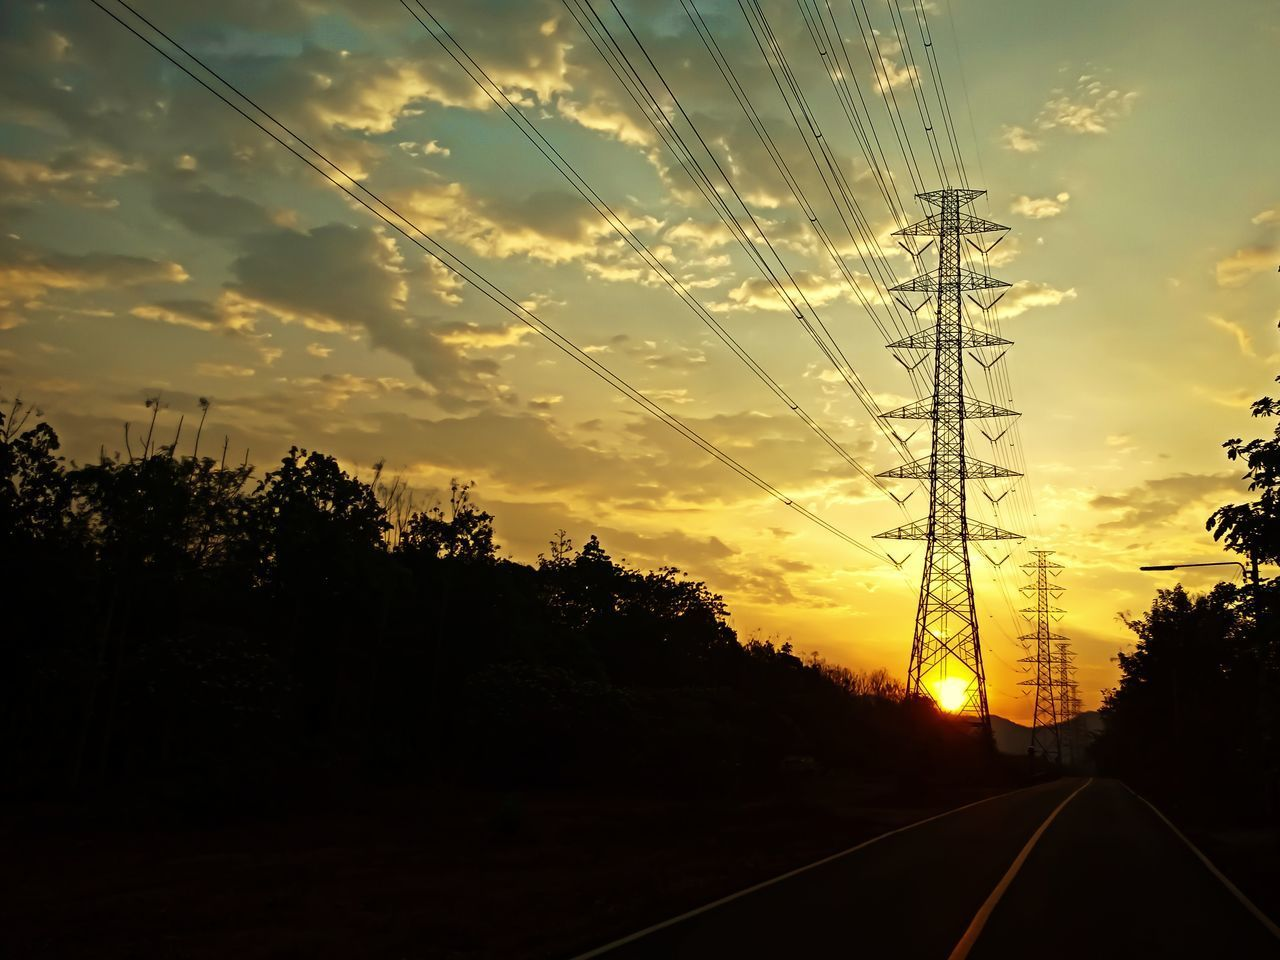 sky, sunset, plant, tree, cloud - sky, transportation, beauty in nature, orange color, electricity, nature, silhouette, no people, electricity pylon, fuel and power generation, power line, the way forward, road, direction, technology, scenics - nature, power supply, diminishing perspective, outdoors